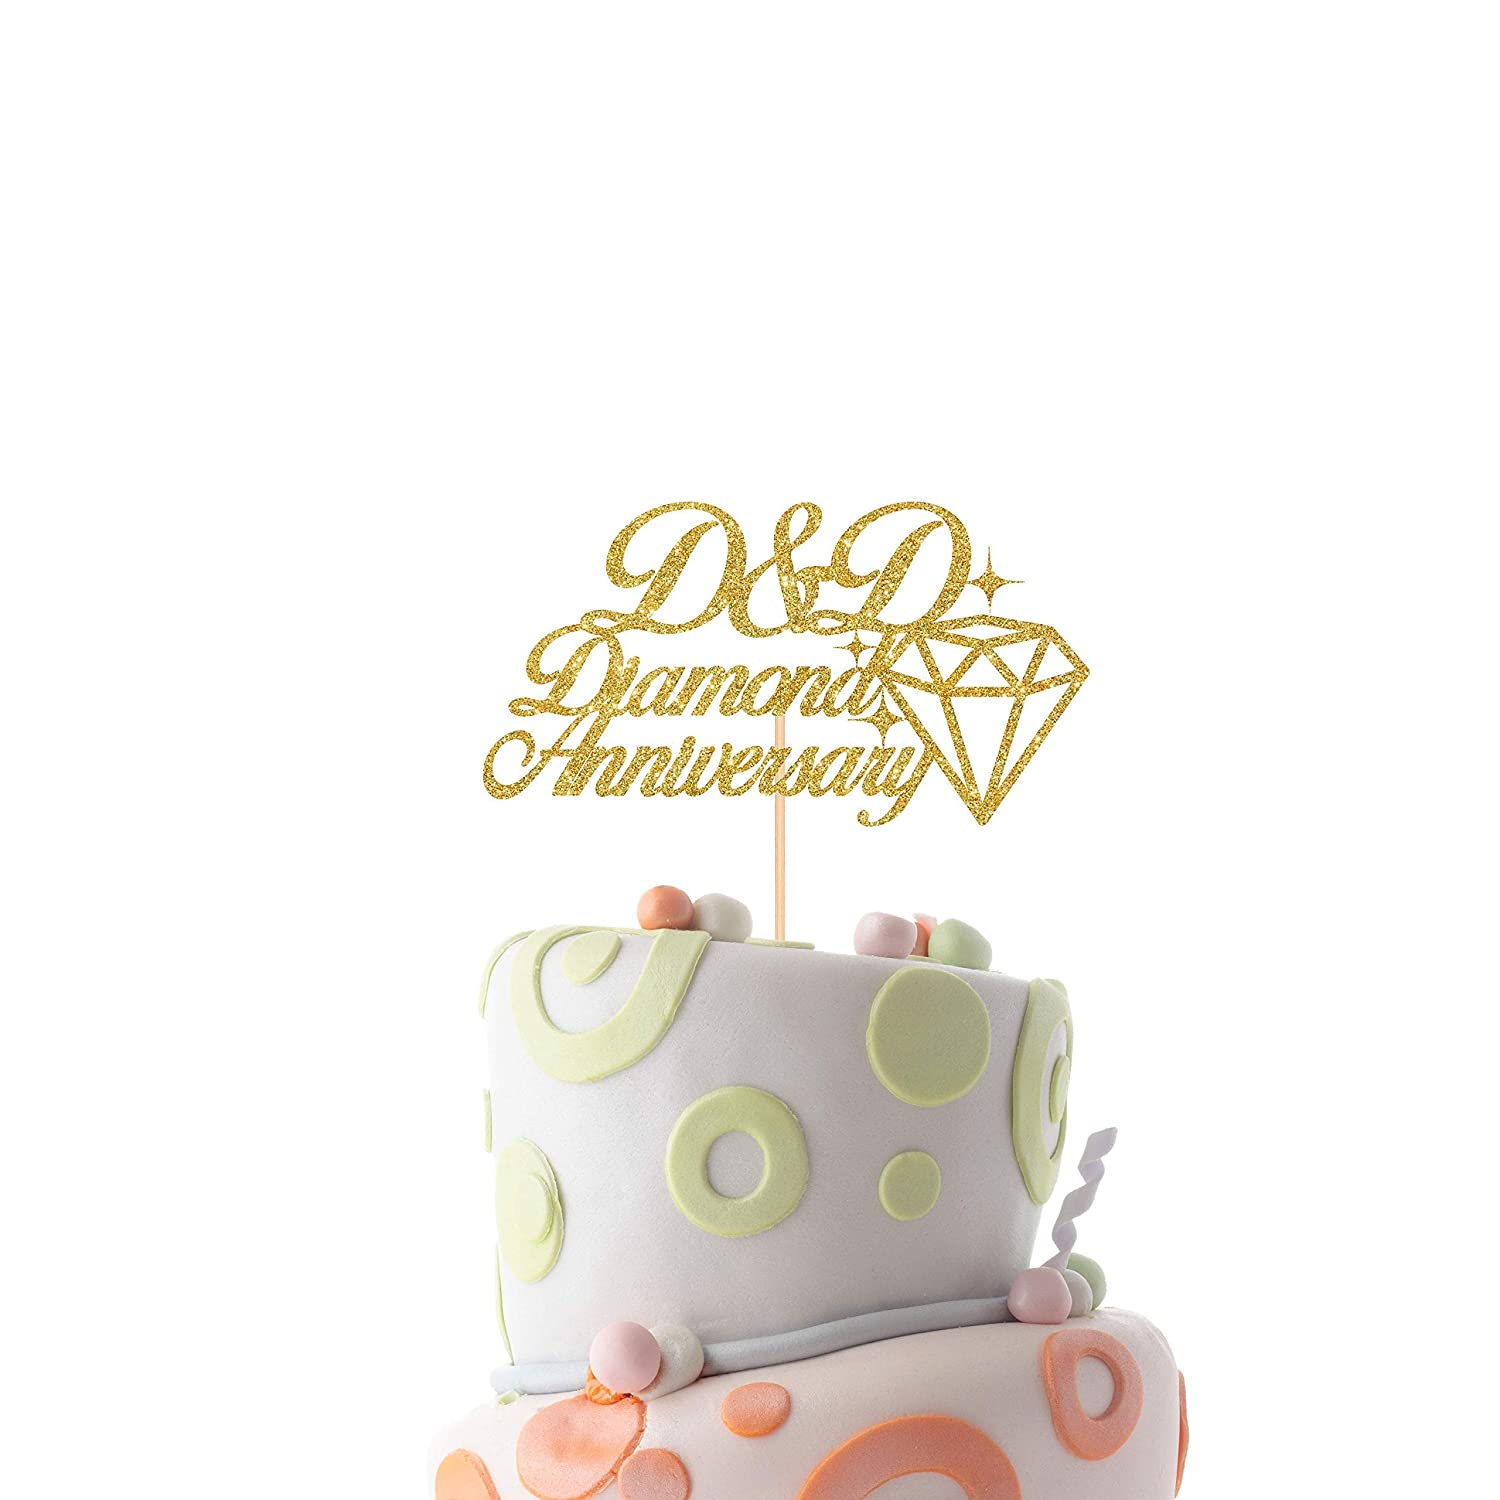 60th anniversary cake topper Personalised wedding anniversary cake topper//Diamond anniversary party decor with initials